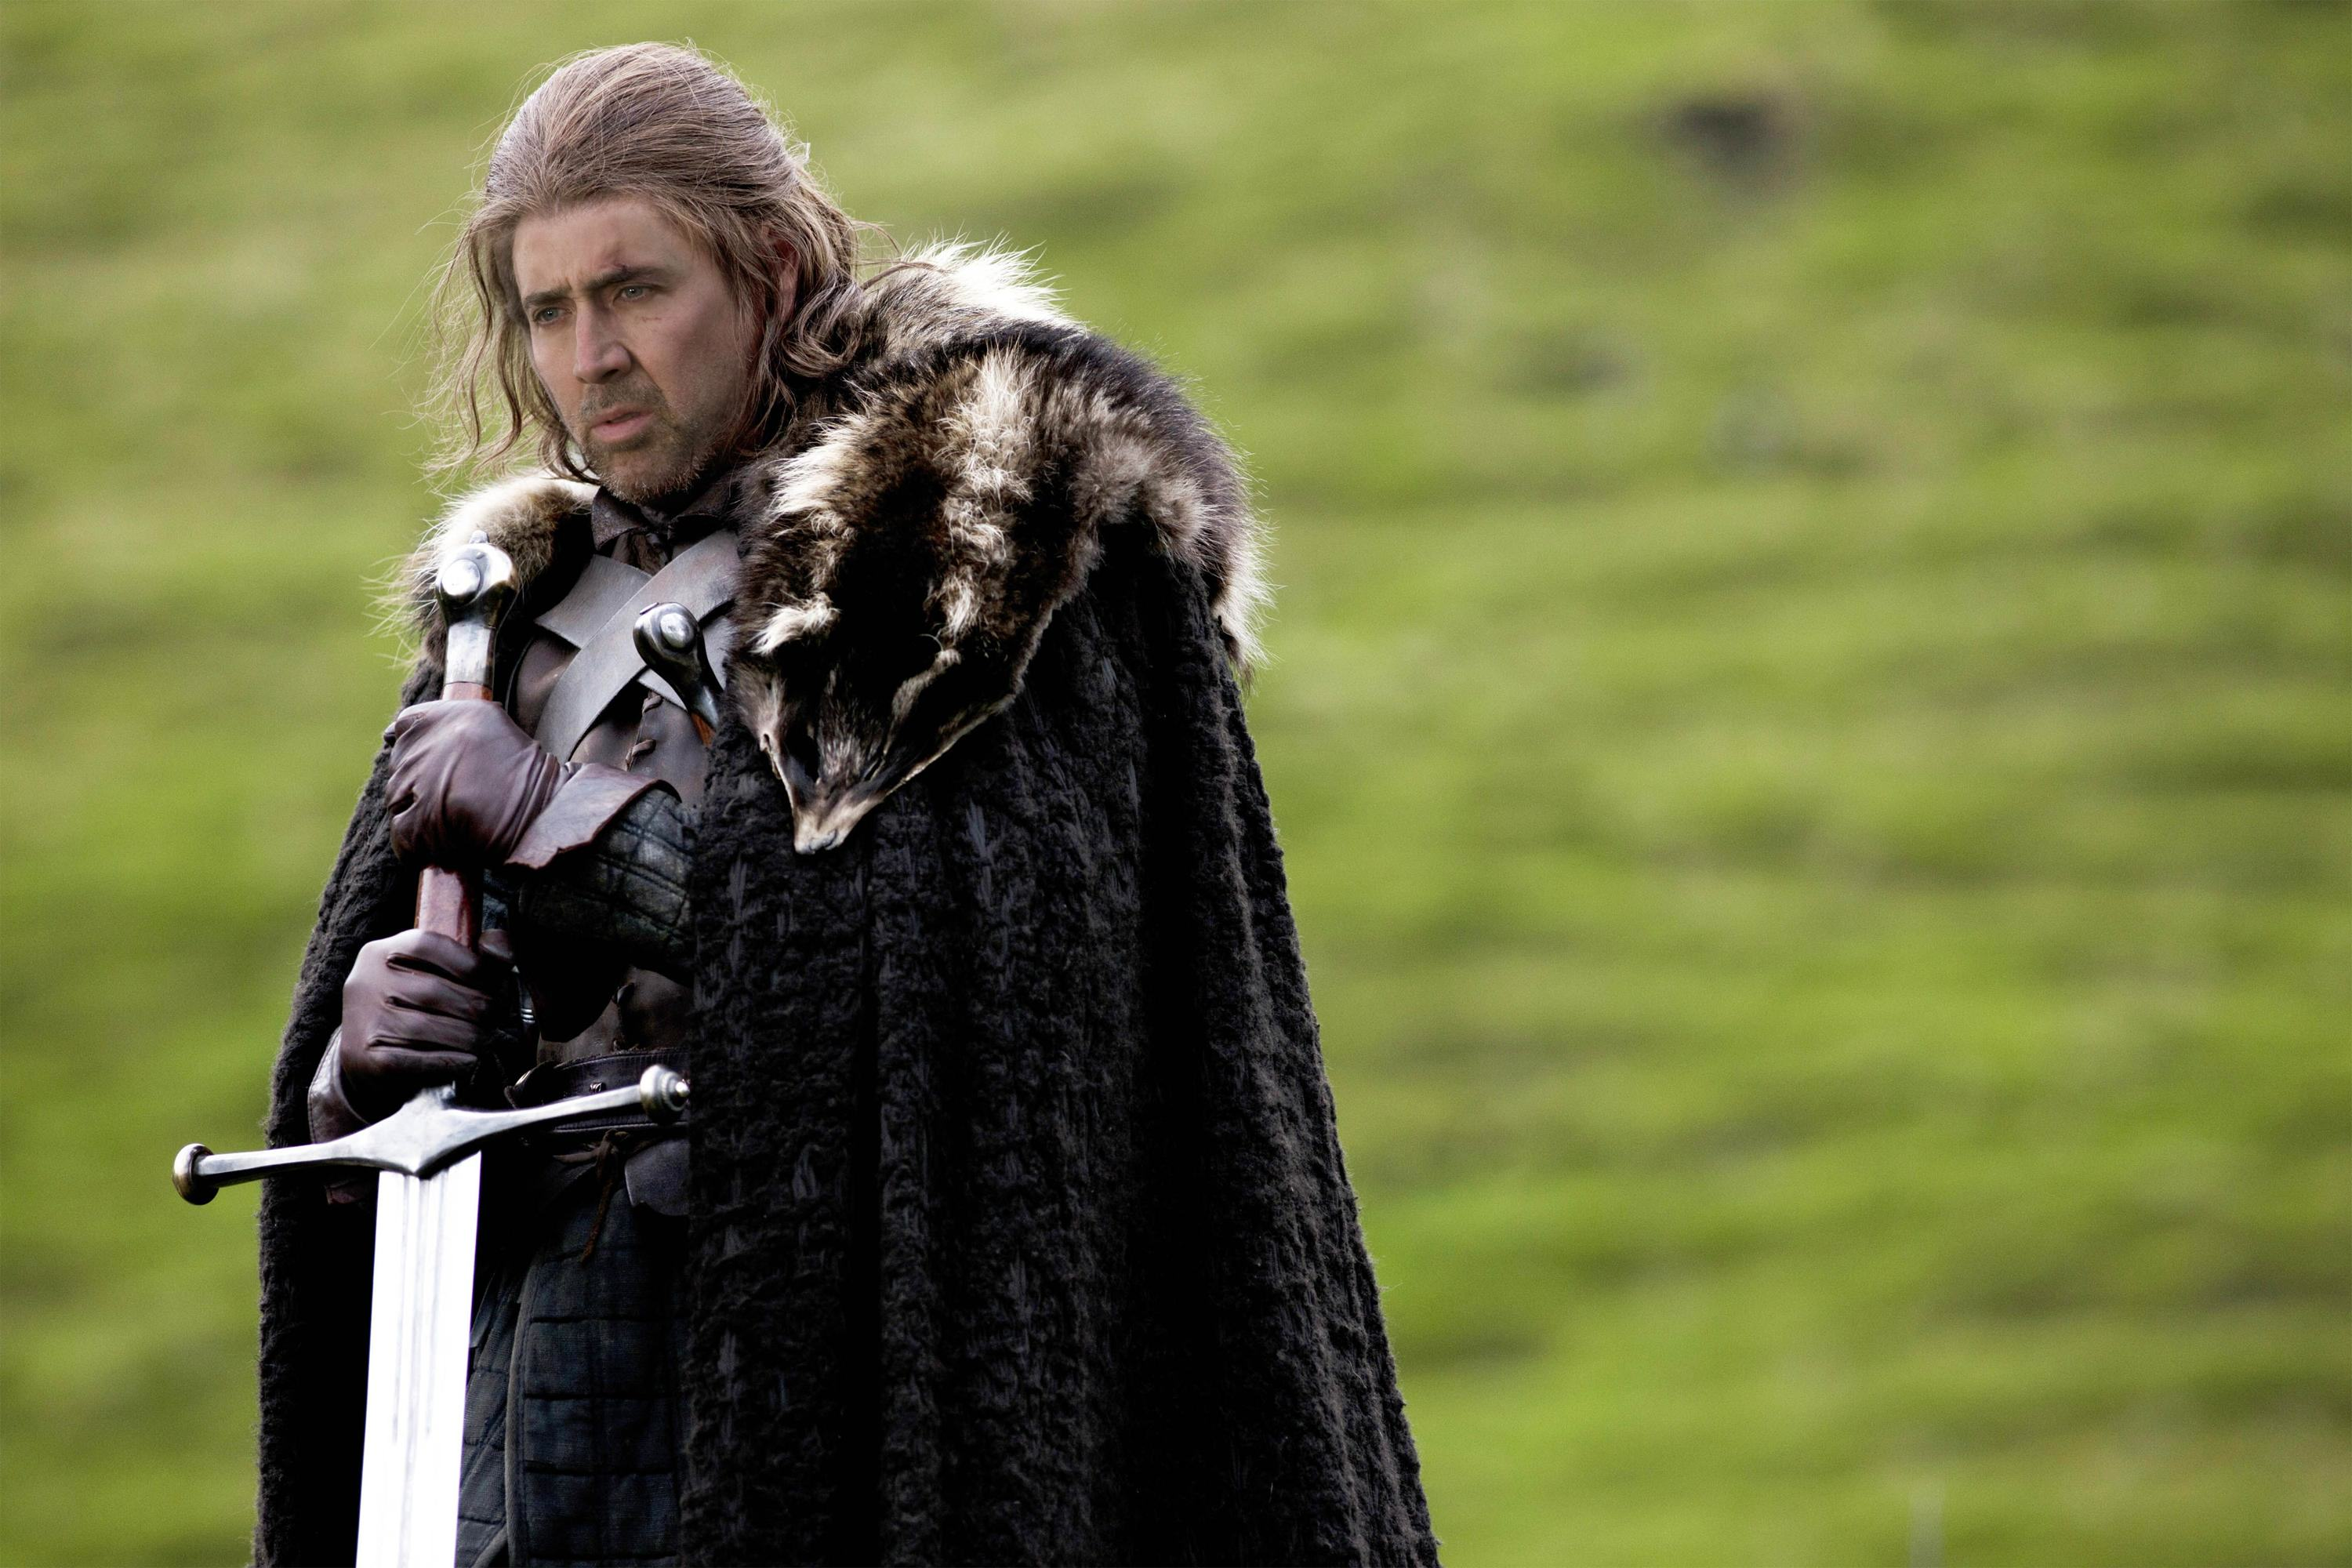 Nicolas Cage As Every Game Of Thrones Character Is Glorious cage of thrones 1